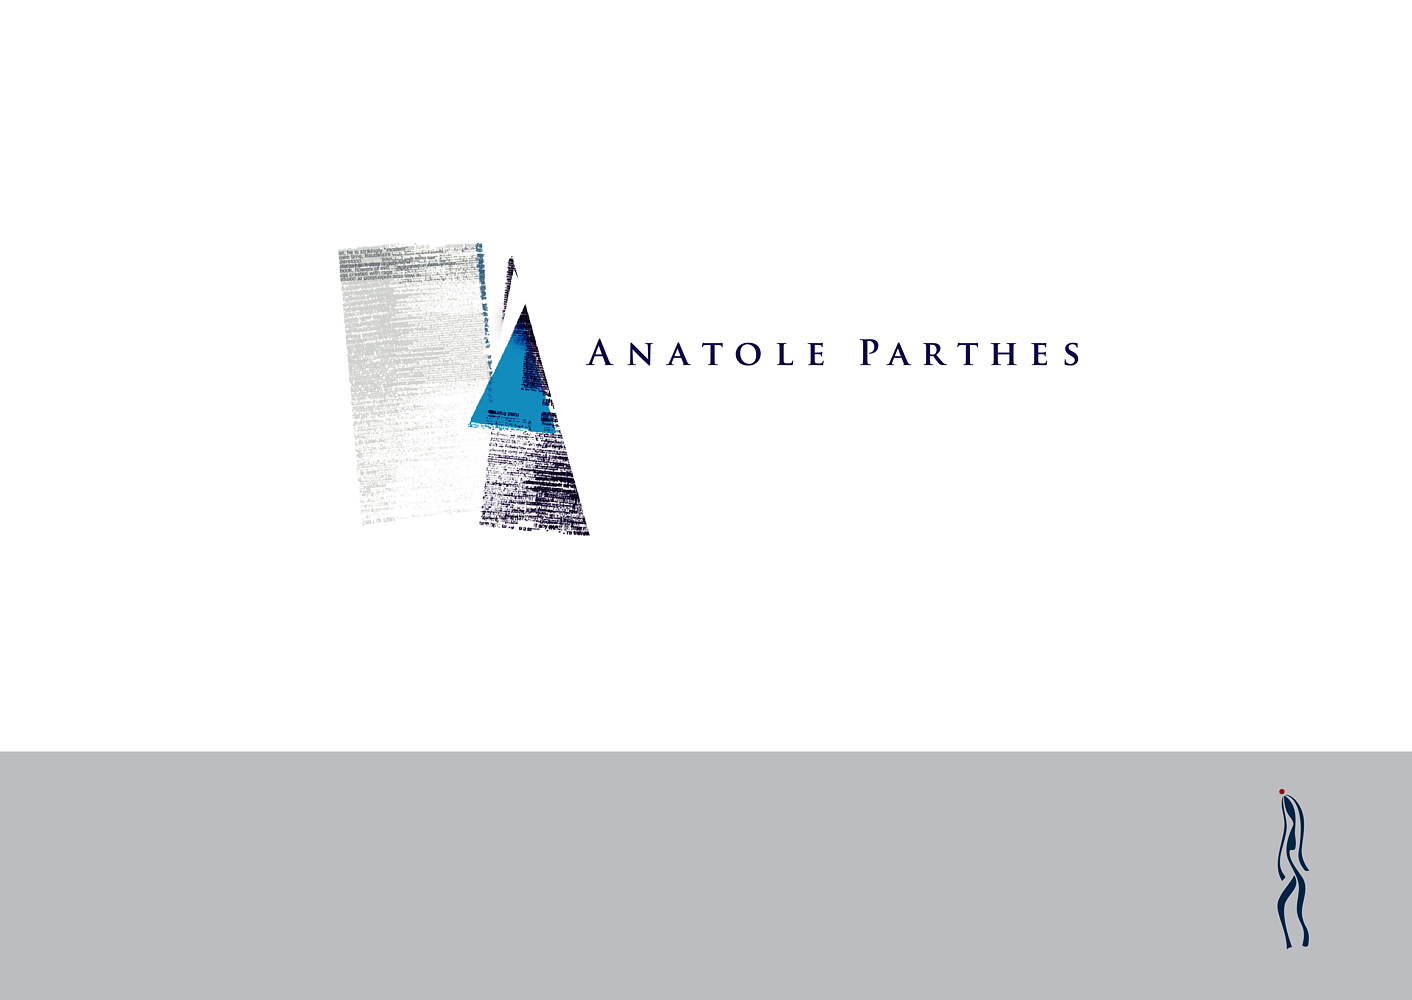 Anatole Parthes | Editing by Nathalie Gribinski